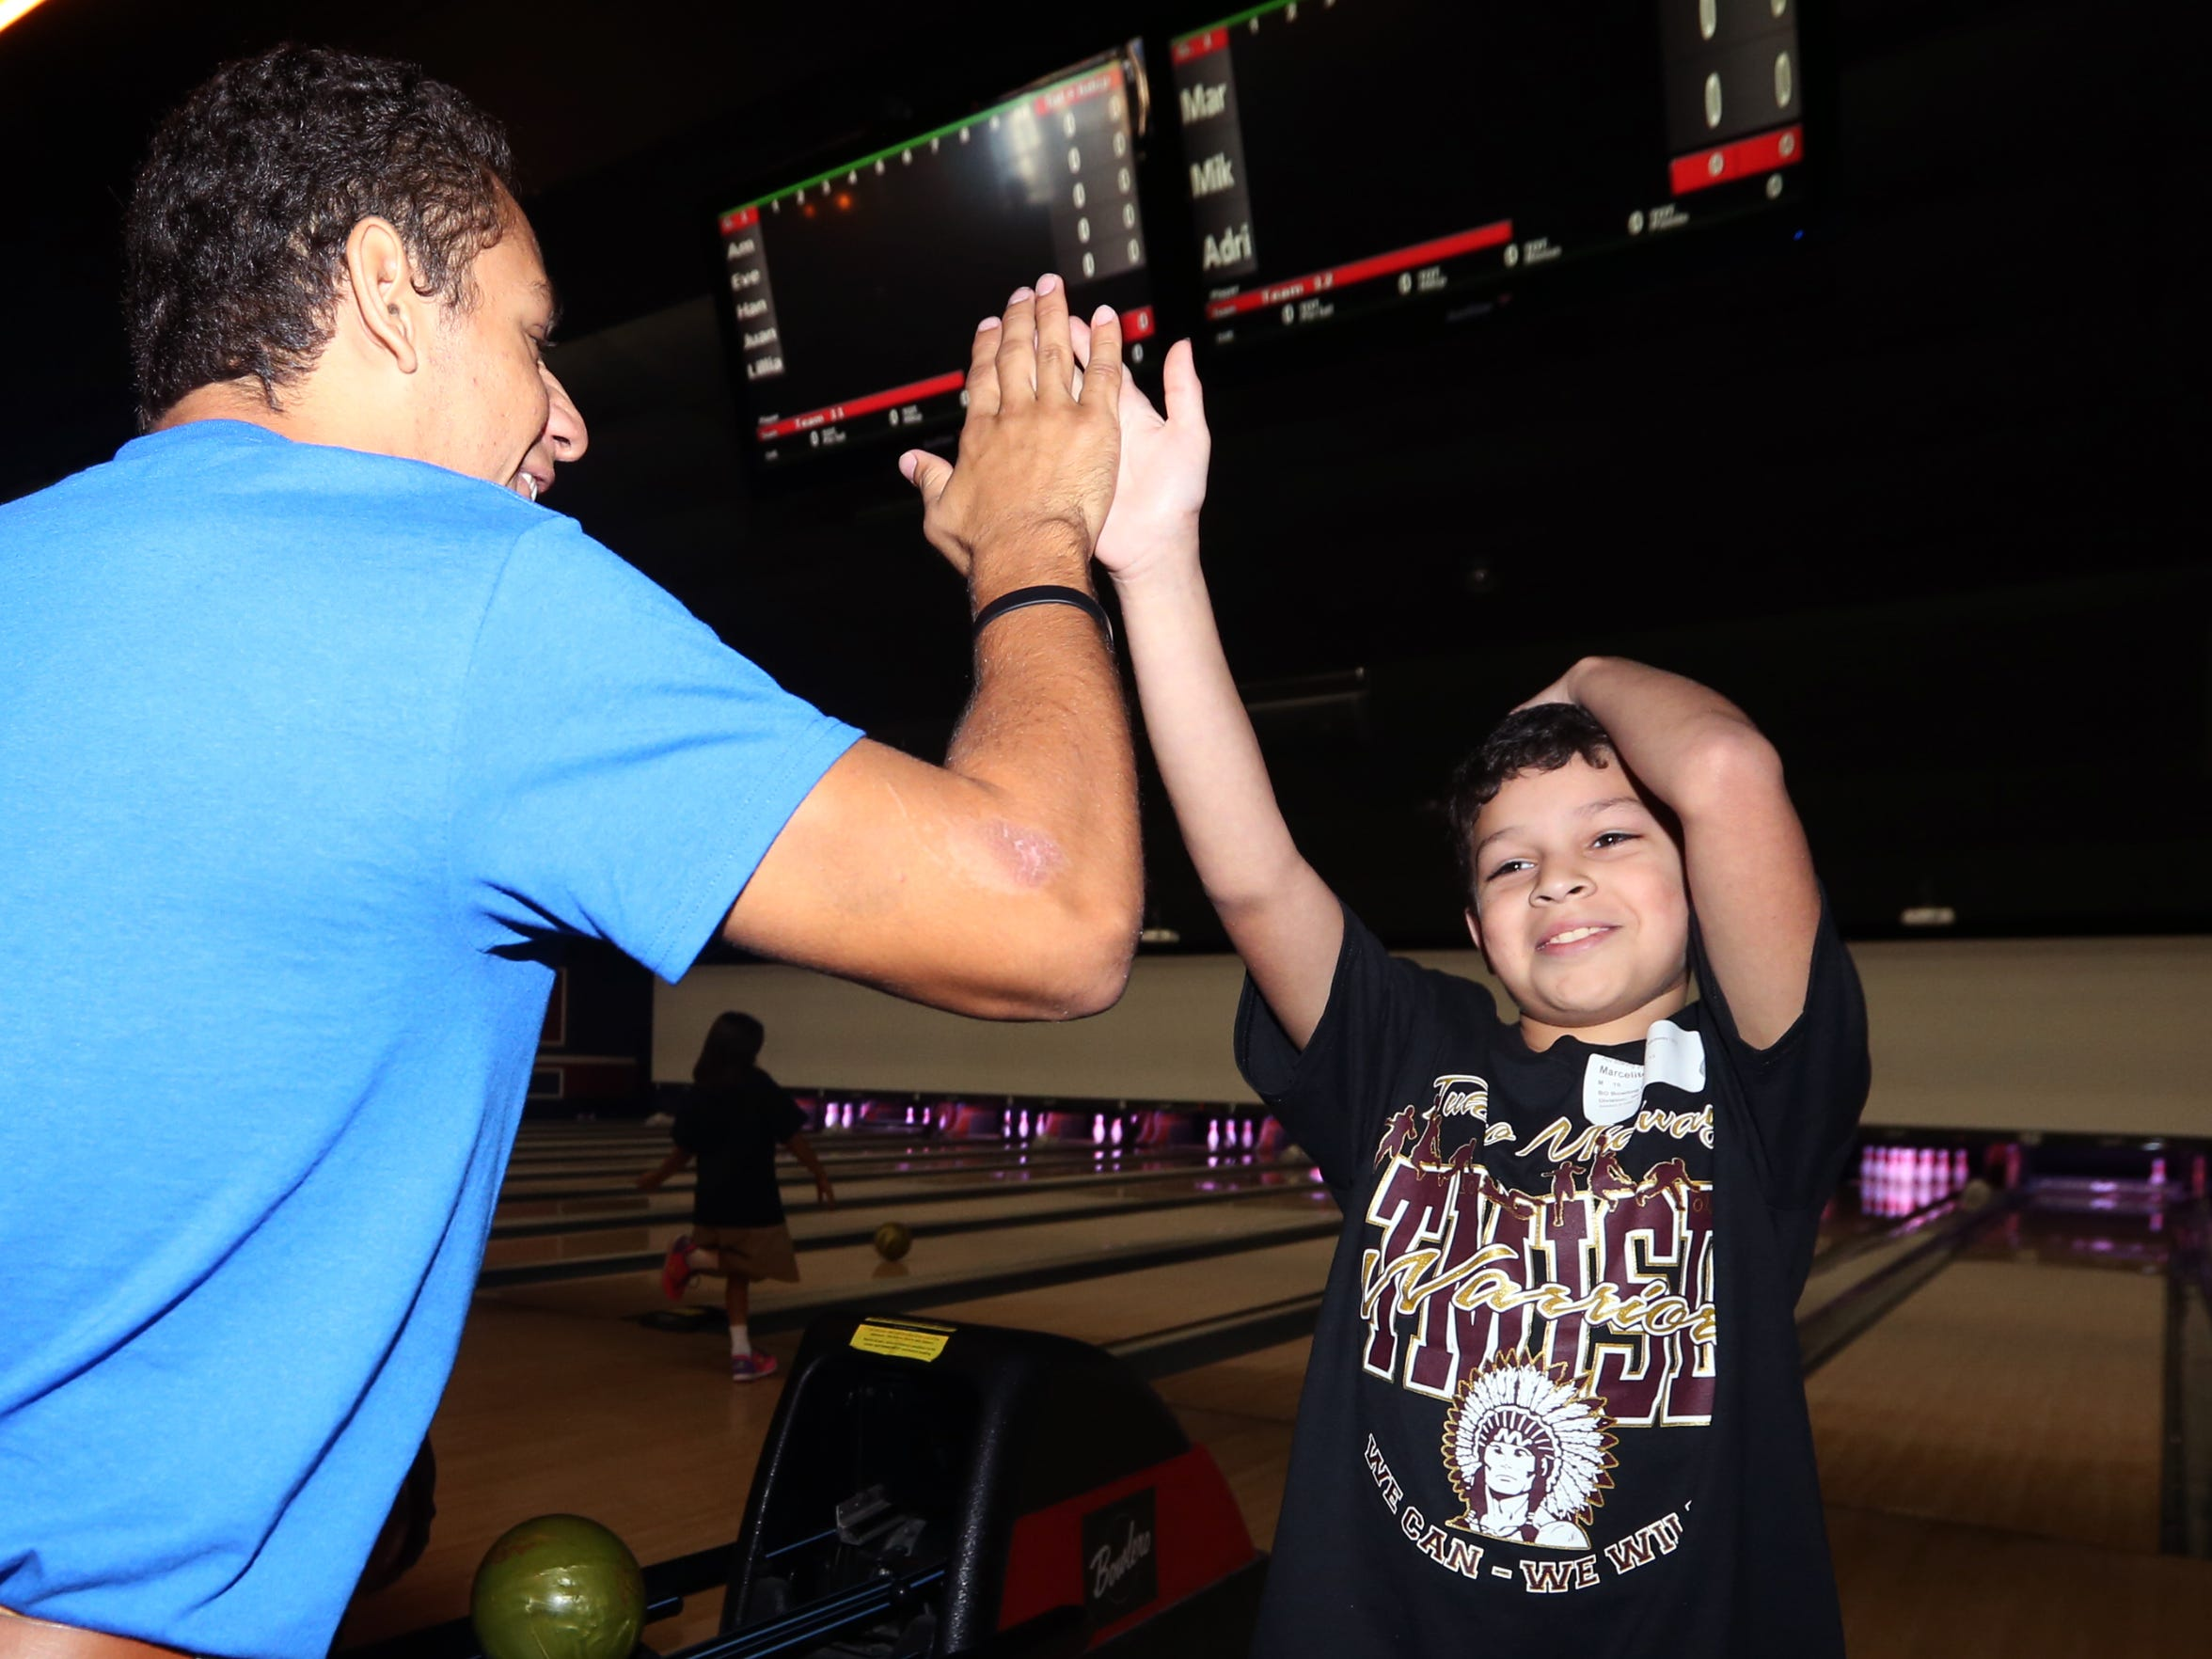 Volunteer Andres Lankenau gives athlete Marcelito Davila, 10, a high five after he earned a strike while he competes in the Special Olympics bowling tournament at Bowlero on Friday, November 4, 2016.